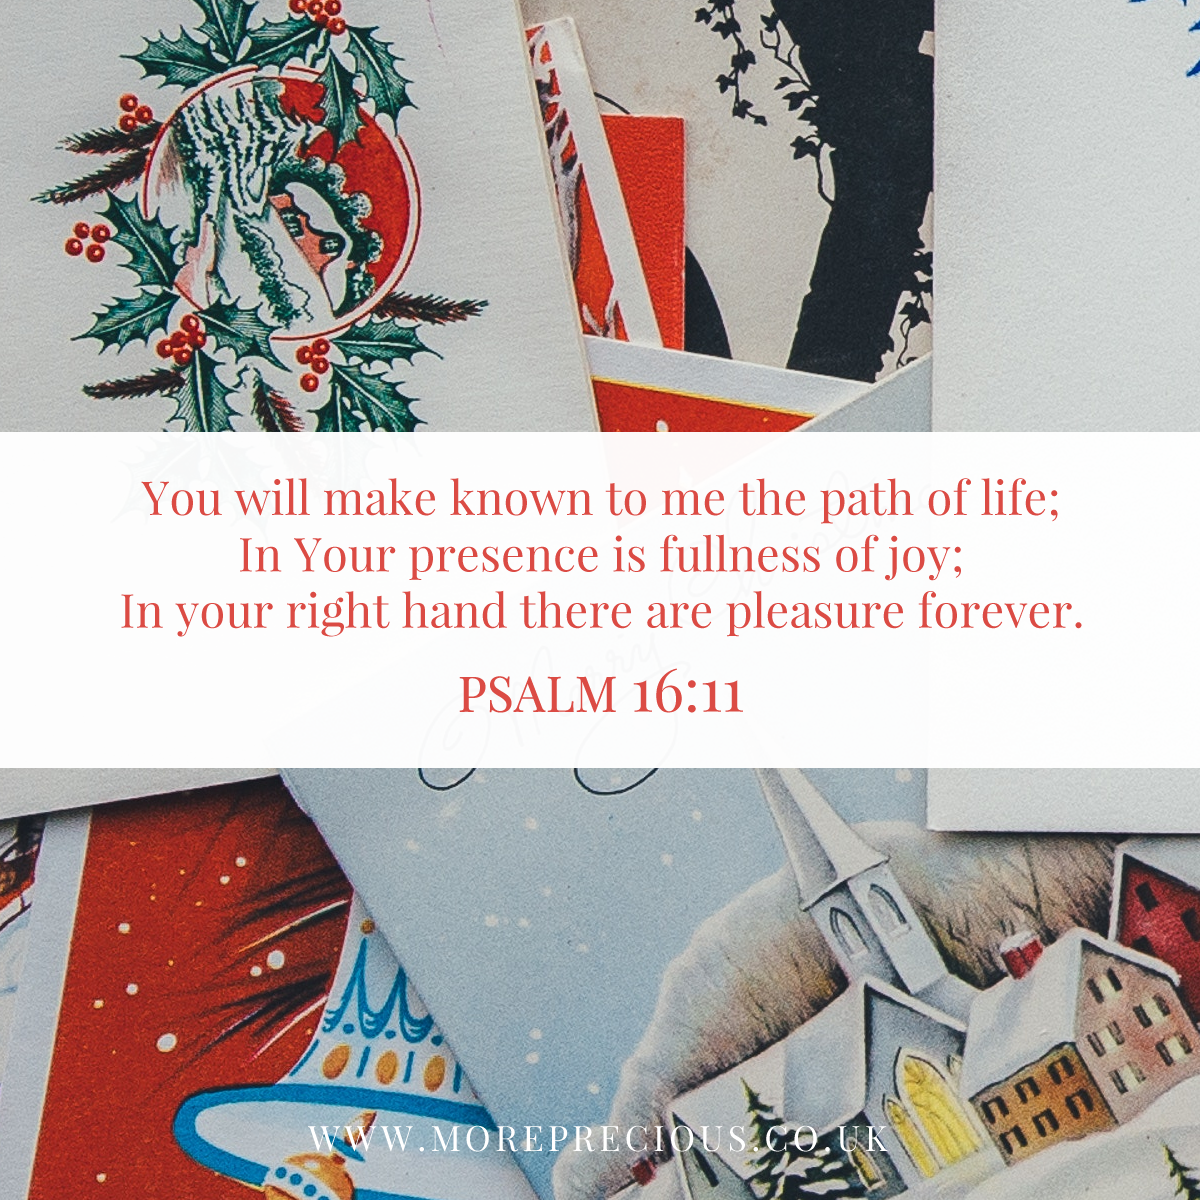 11 - Psalm 16v11_preview.png